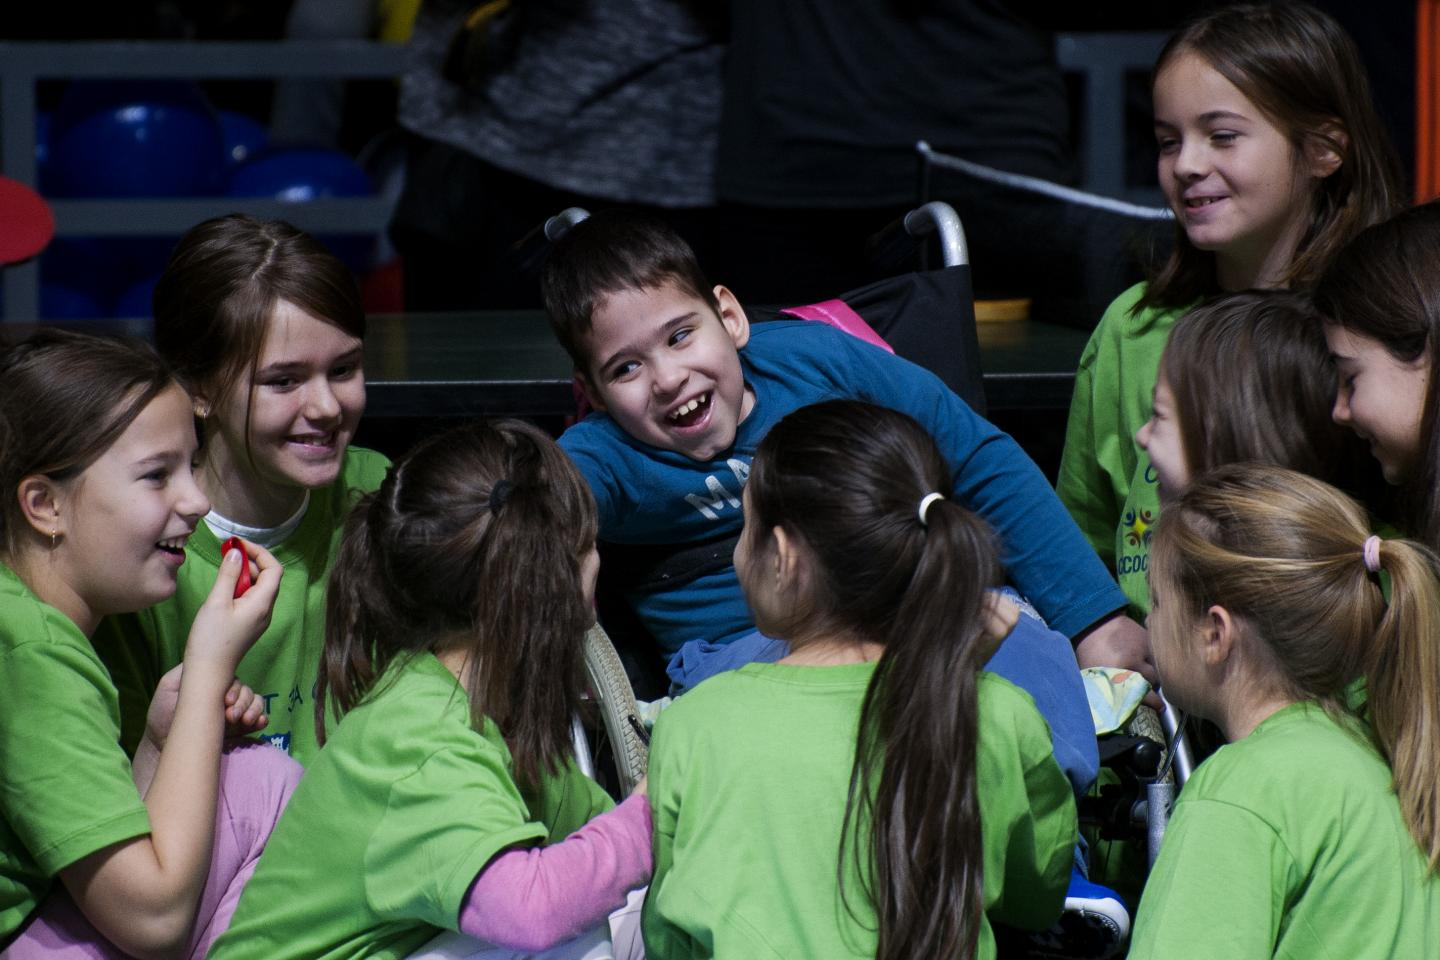 Boy with disability smiling with his friends at a sports event